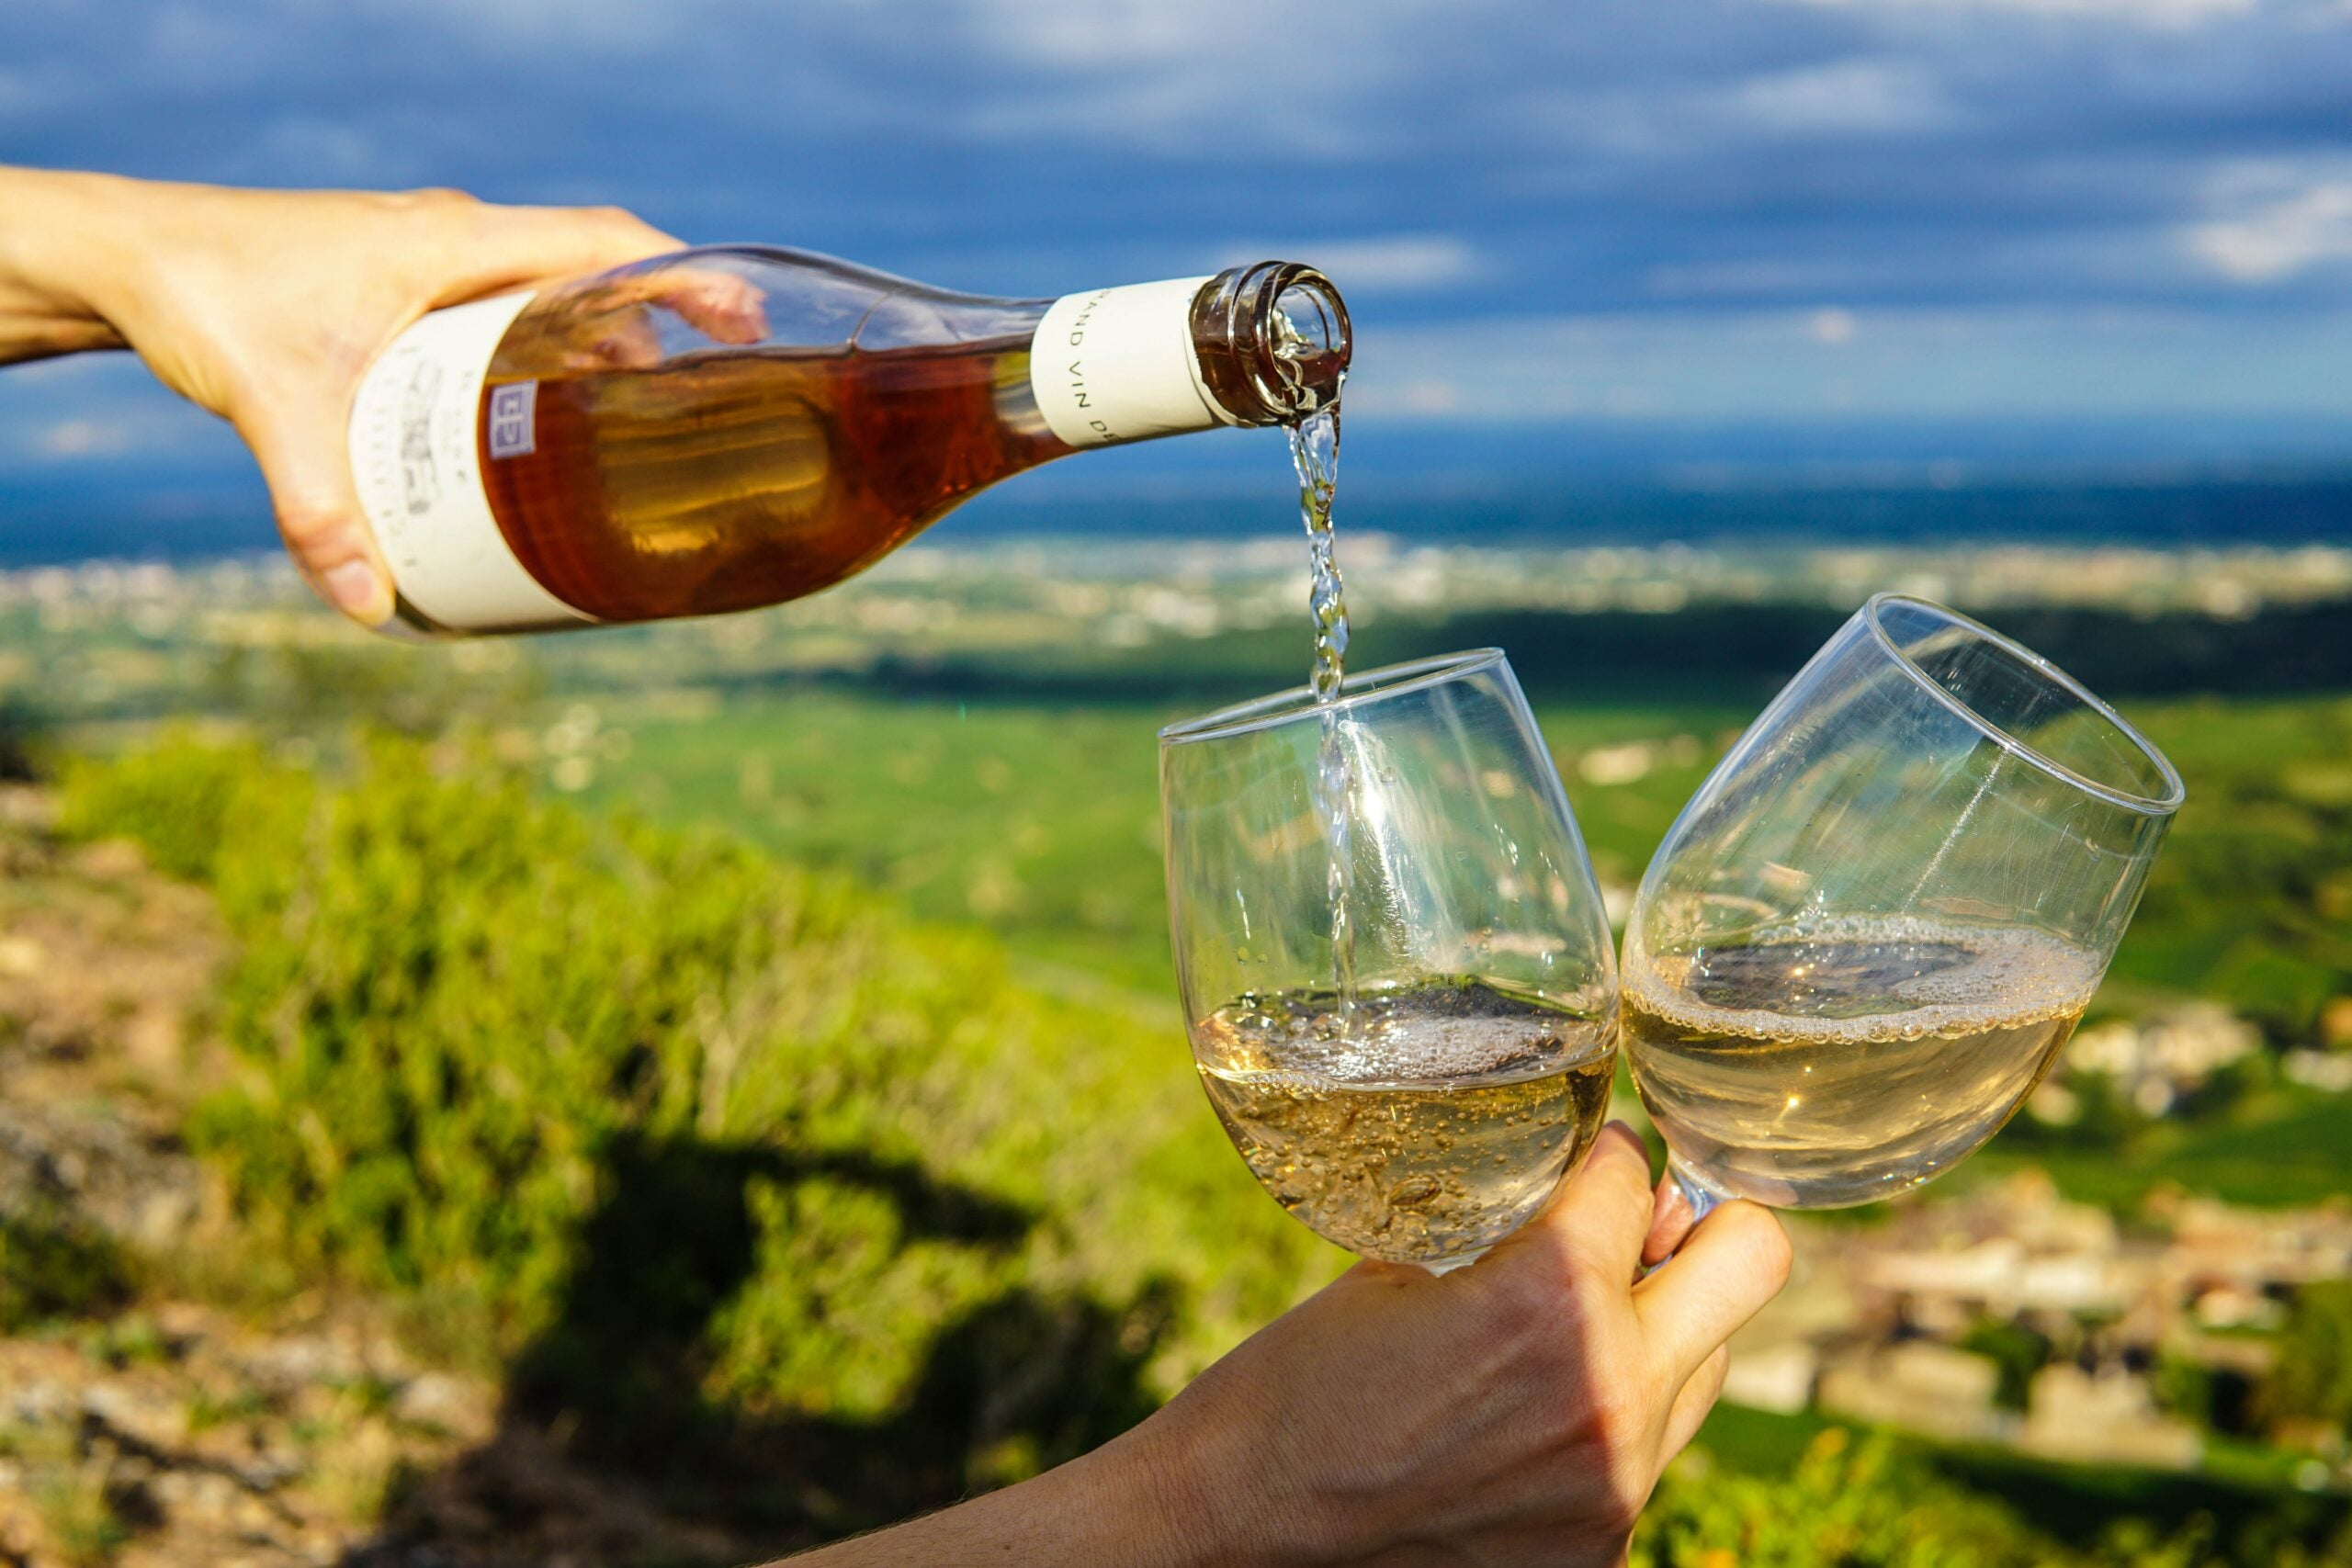 Wine being poired into glasses overlooking natural landscape.